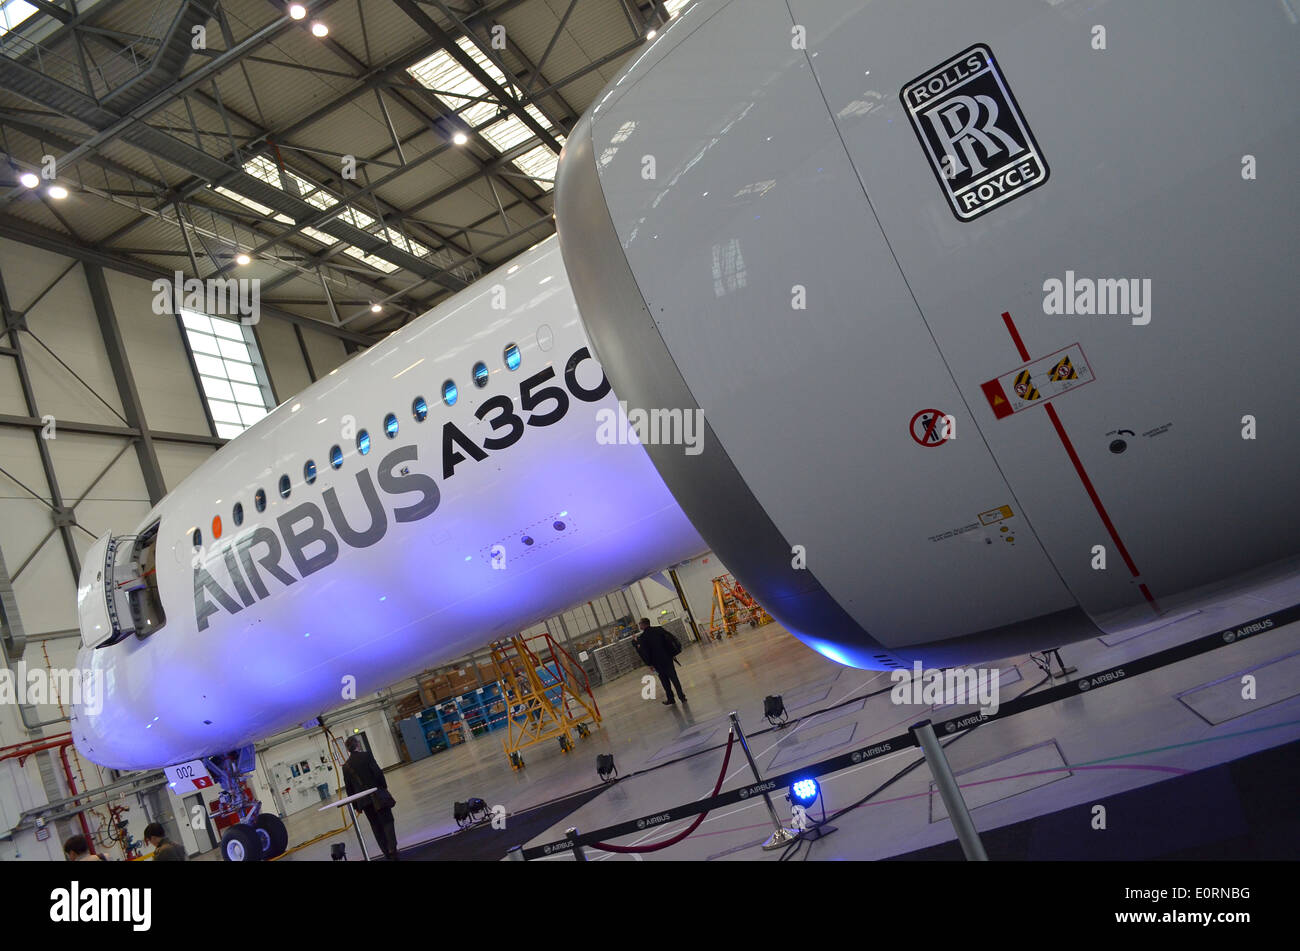 An Airbus A350XWB at the Airbus headquarters in Finkenwerder, Hamburg, Germany Stock Photo